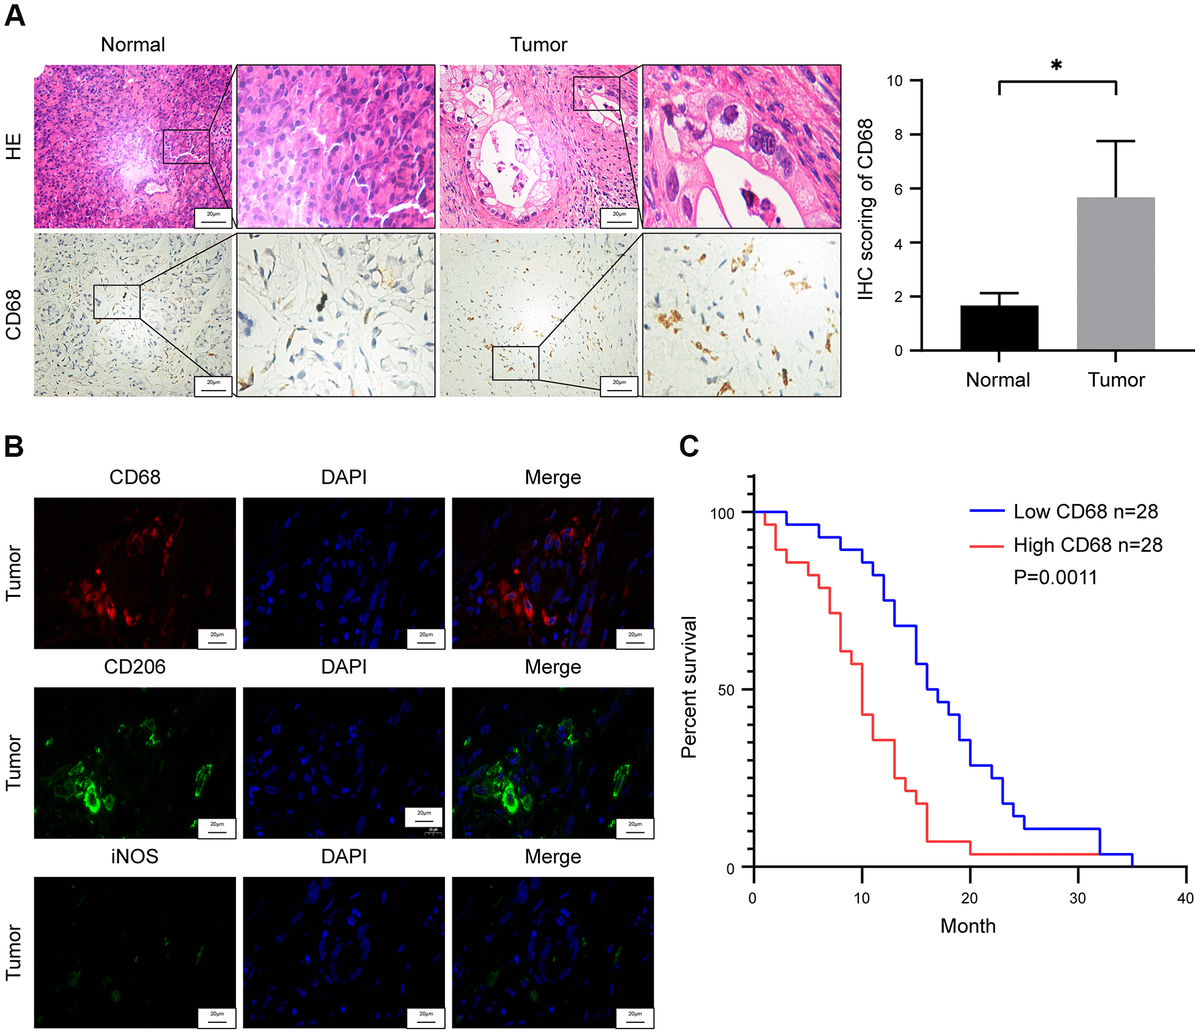 Tumor-associated macrophage (TAM) density correlates with survival outcomes in pancreatic ductal adenocarcinoma (PDAC) patients. (A) Representative images show hematoxylin and eosin (H&E) and CD68 stained PDAC and adjacent normal pancreatic tissues. Note: n = 3; Scale bar = 20 μm; *P B) Representative fluorescence staining images show CD68, iNOS and CD206 expression in PDAC and adjacent normal pancreatic tissues. Scale bar = 20 μm. (C) Kaplan-Meier survival curve analysis shows overall survival rates of CD68-high (n = 28) and CD68-low (n = 28) expressing PDAC patients from Ruijin Hospital (log-rank test: P